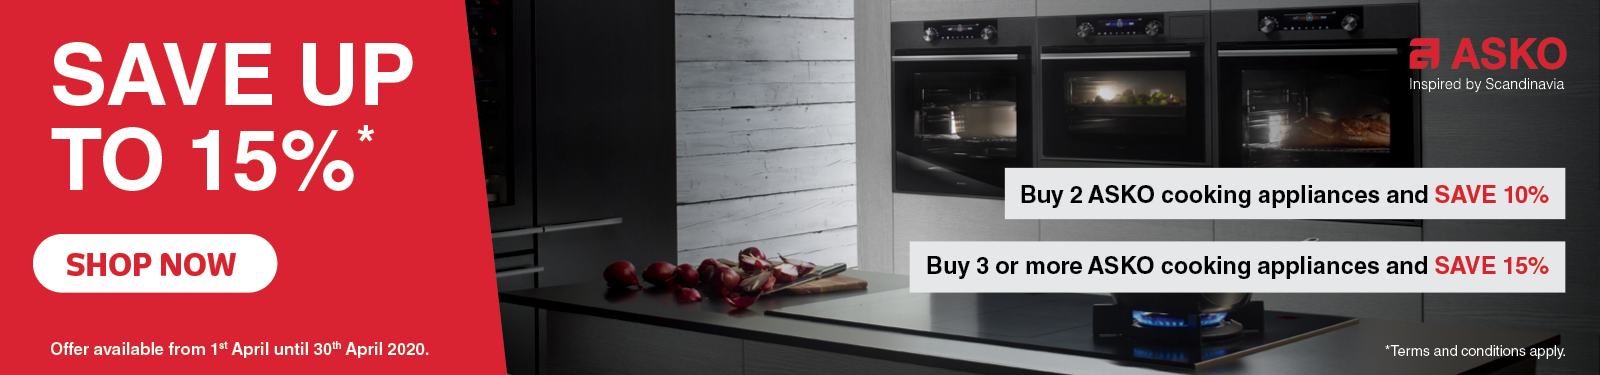 Save Up To 15% On Asko Cooking Bundles